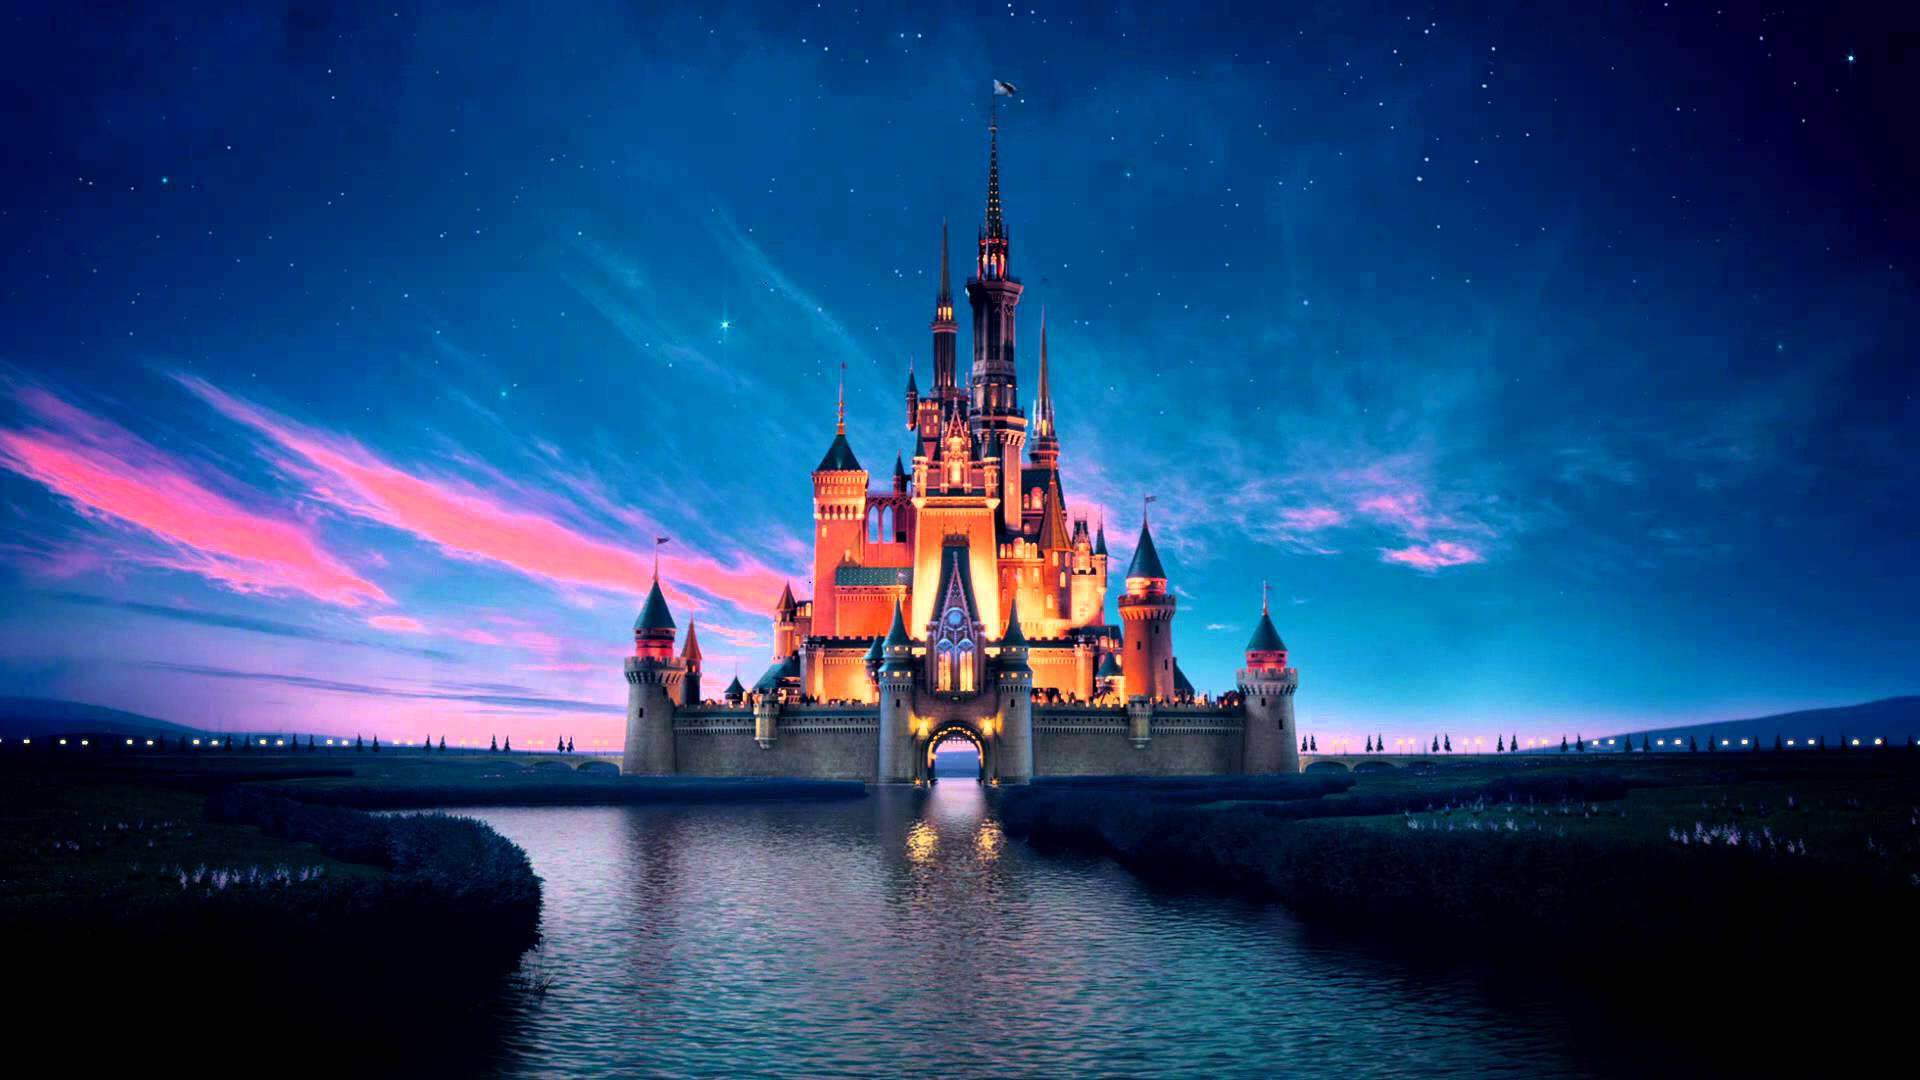 Disney Wallpapers Collection of Disney Backgrounds Disney High